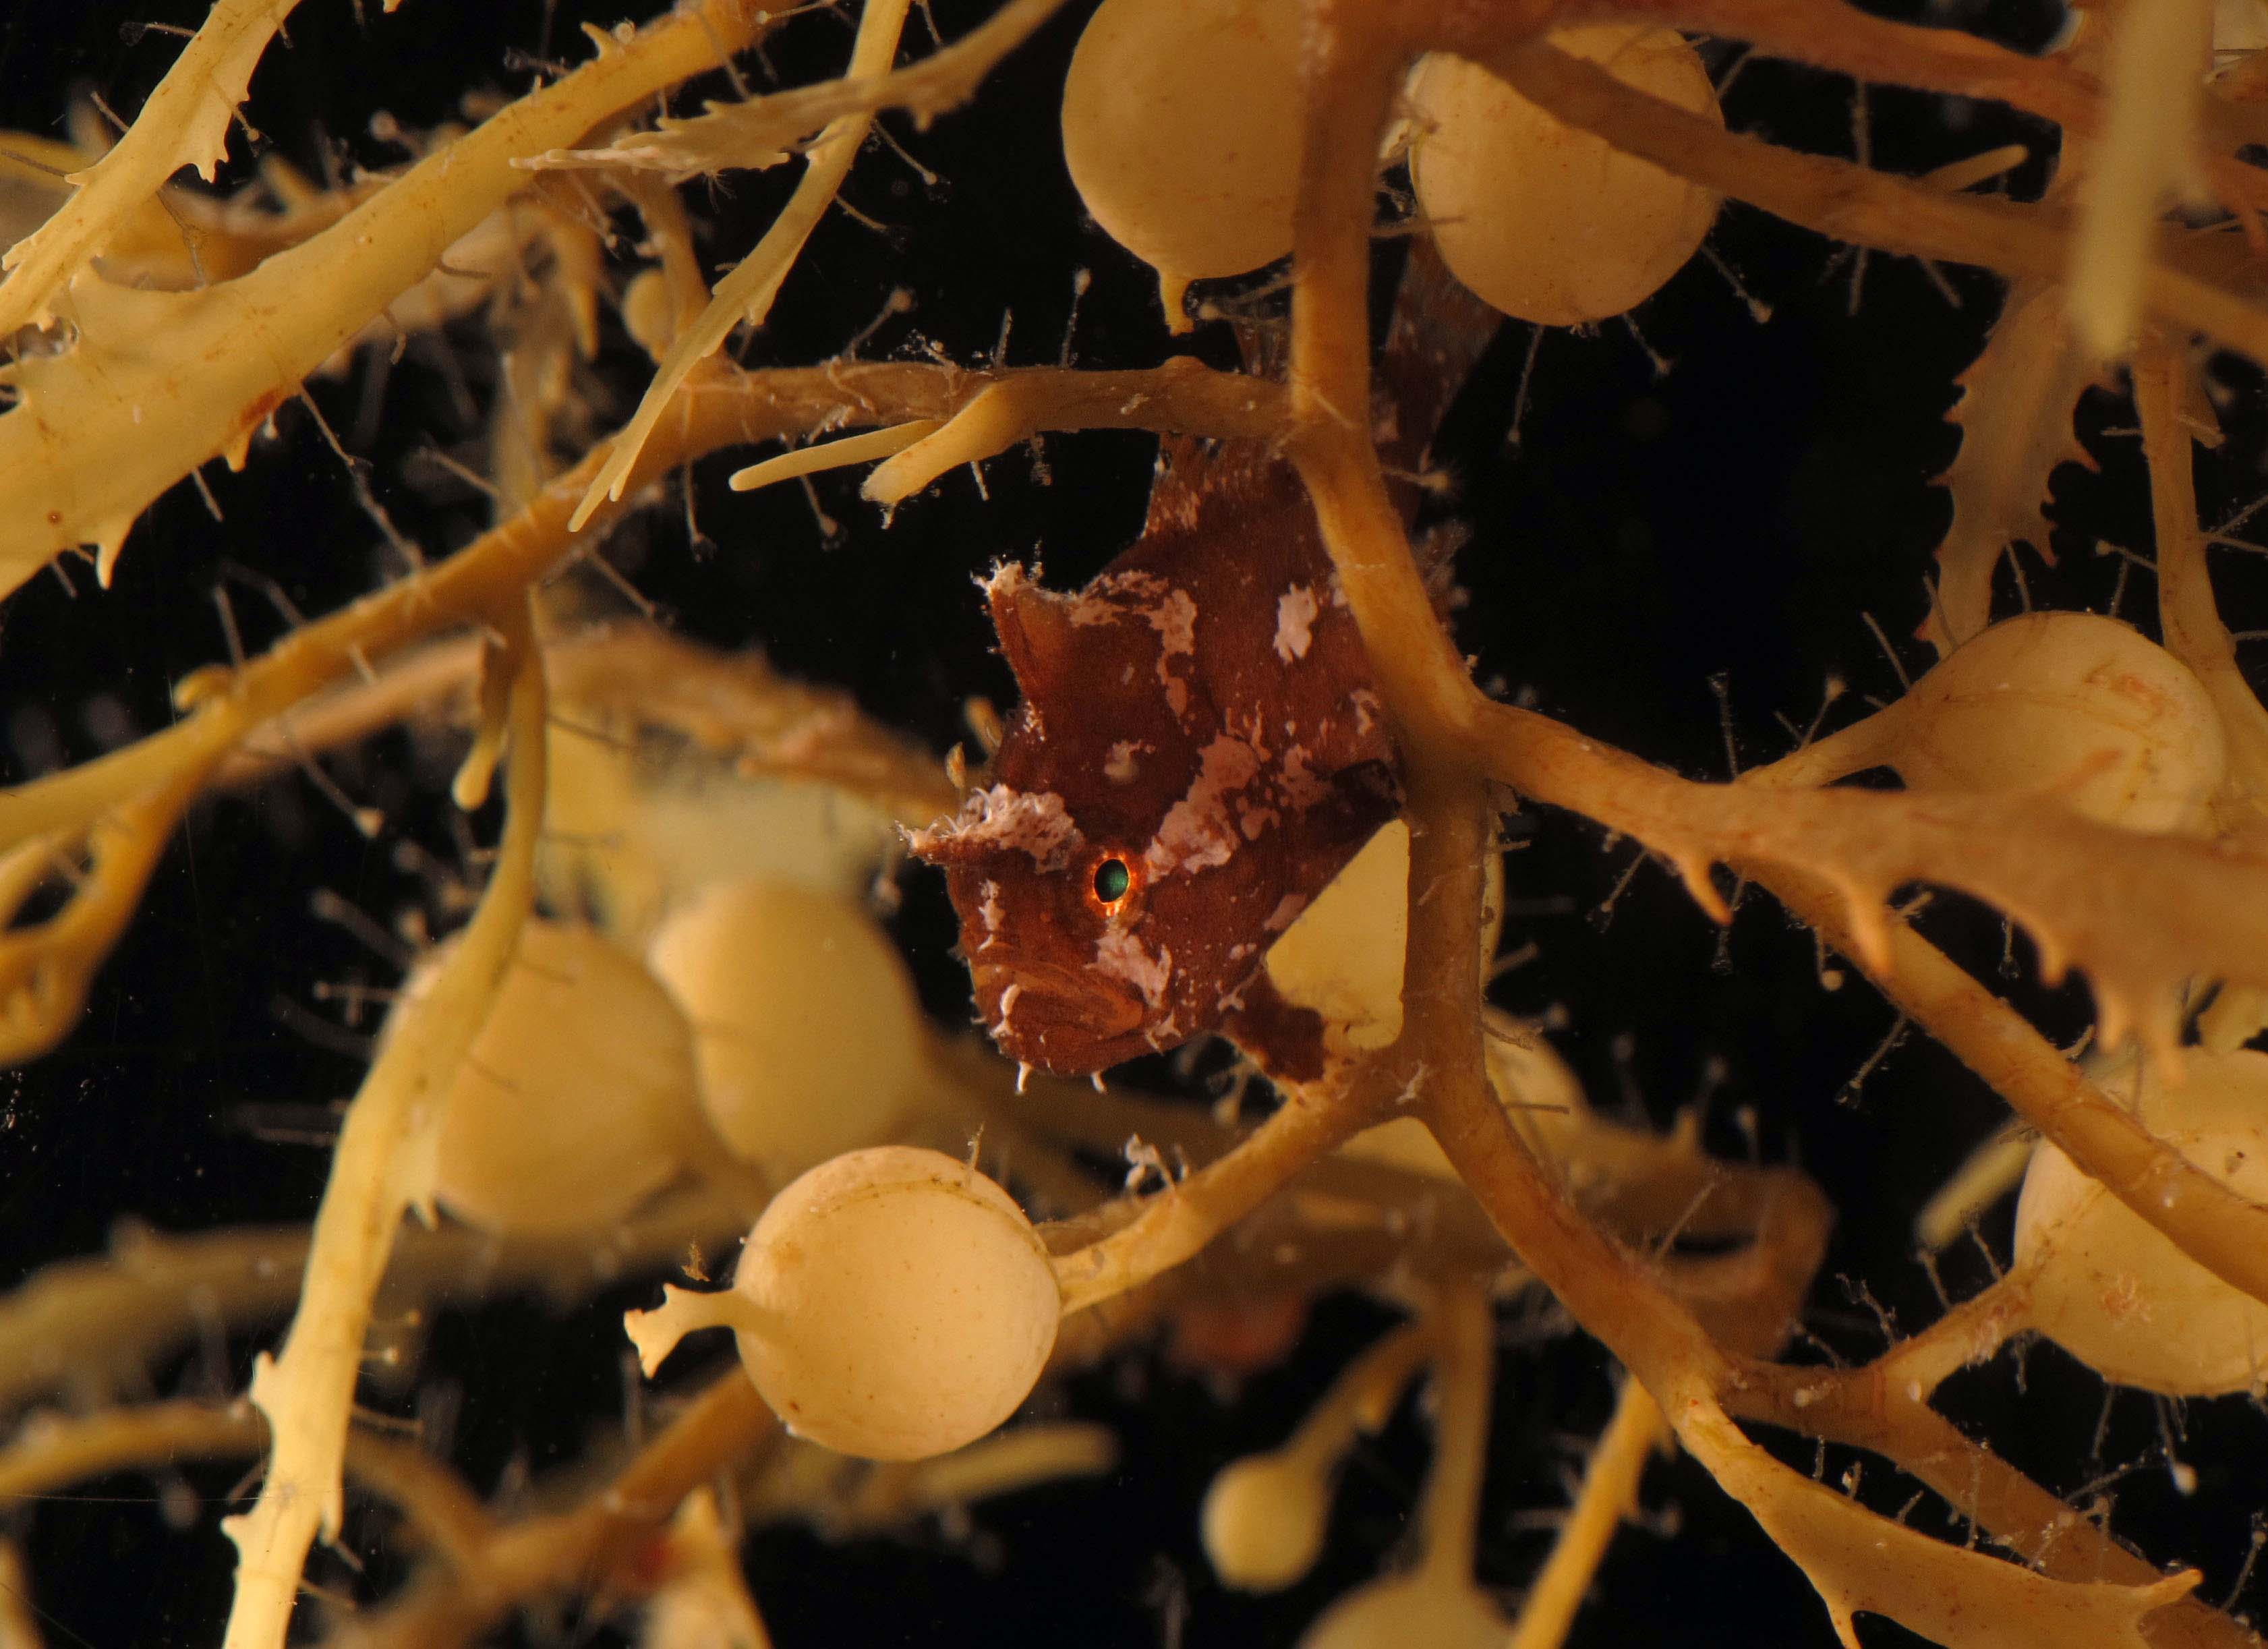 The Sargassum frogfish is a small but voracious predator - it can ingest animals up to it's own size!<div class='credit'><strong>Credit:</strong> The Sargassum frogfish is a small but voracious predator - it can ingest animals up to it's own size!</div>